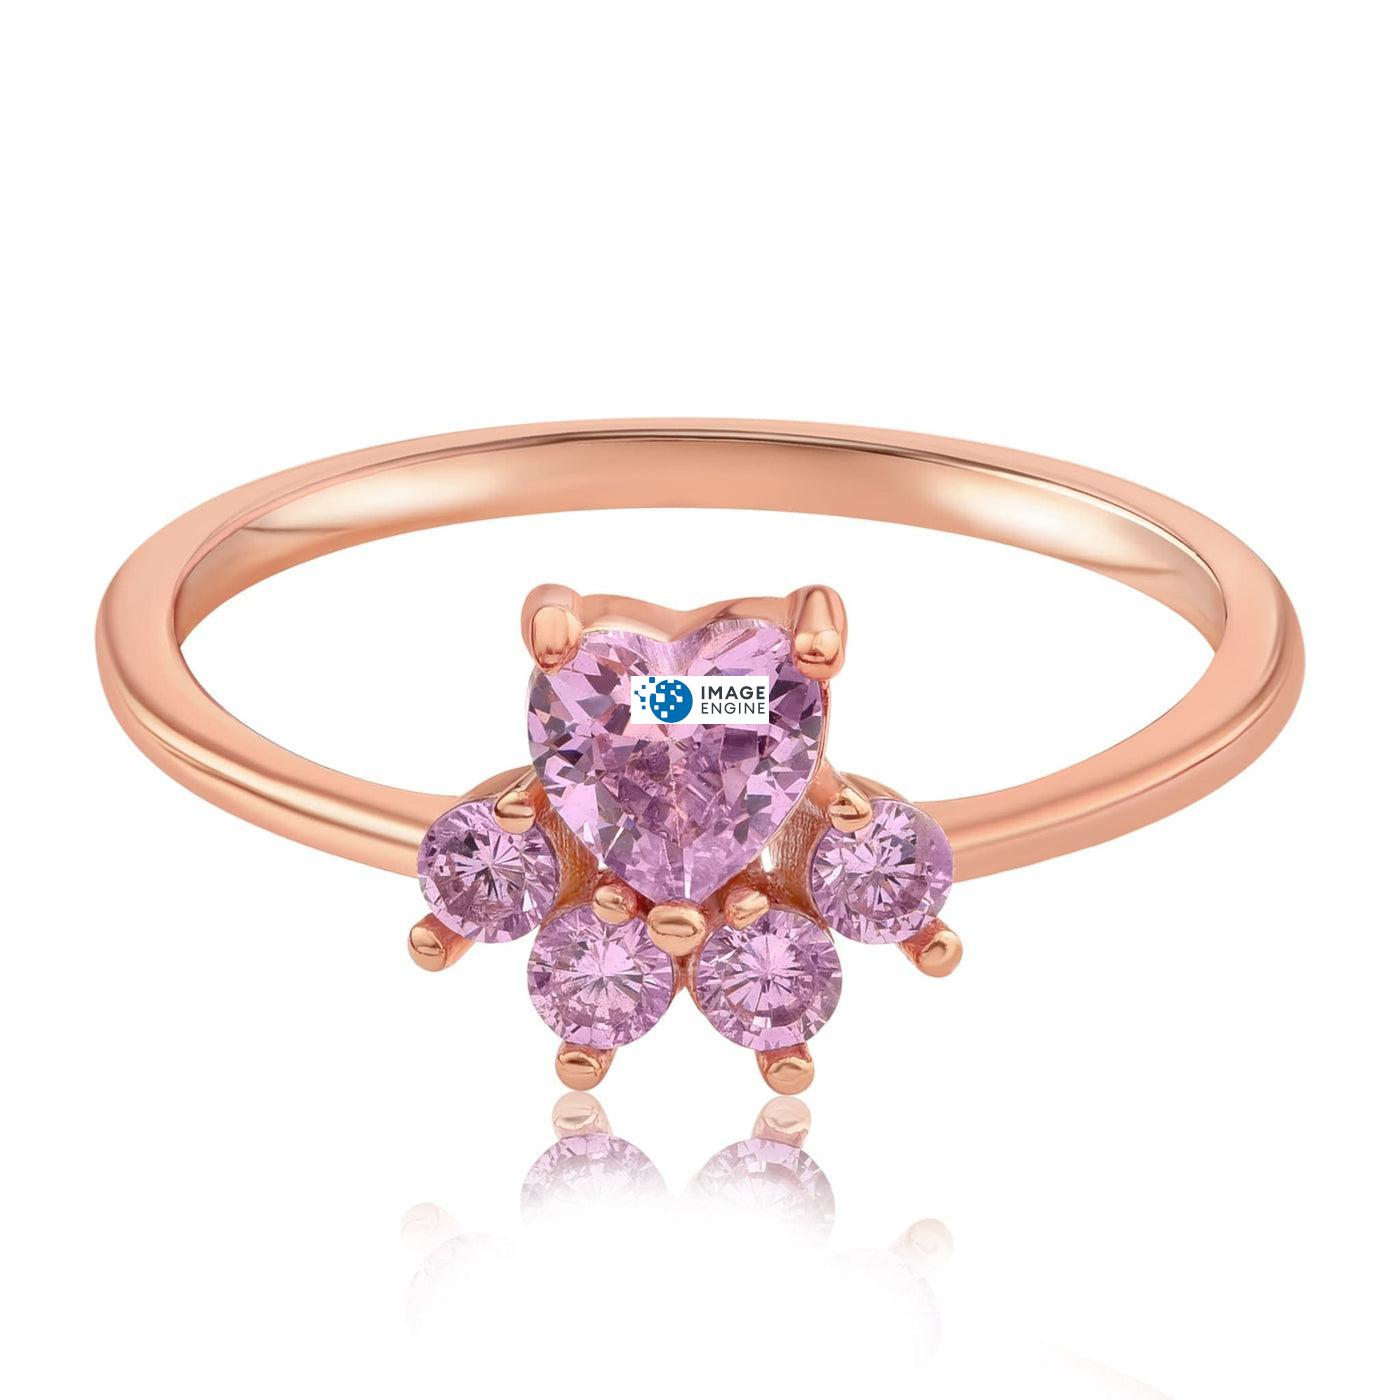 Bella Paw Rose Quartz Ring - Front View Facing Down - 18K Rose Gold Vermeil